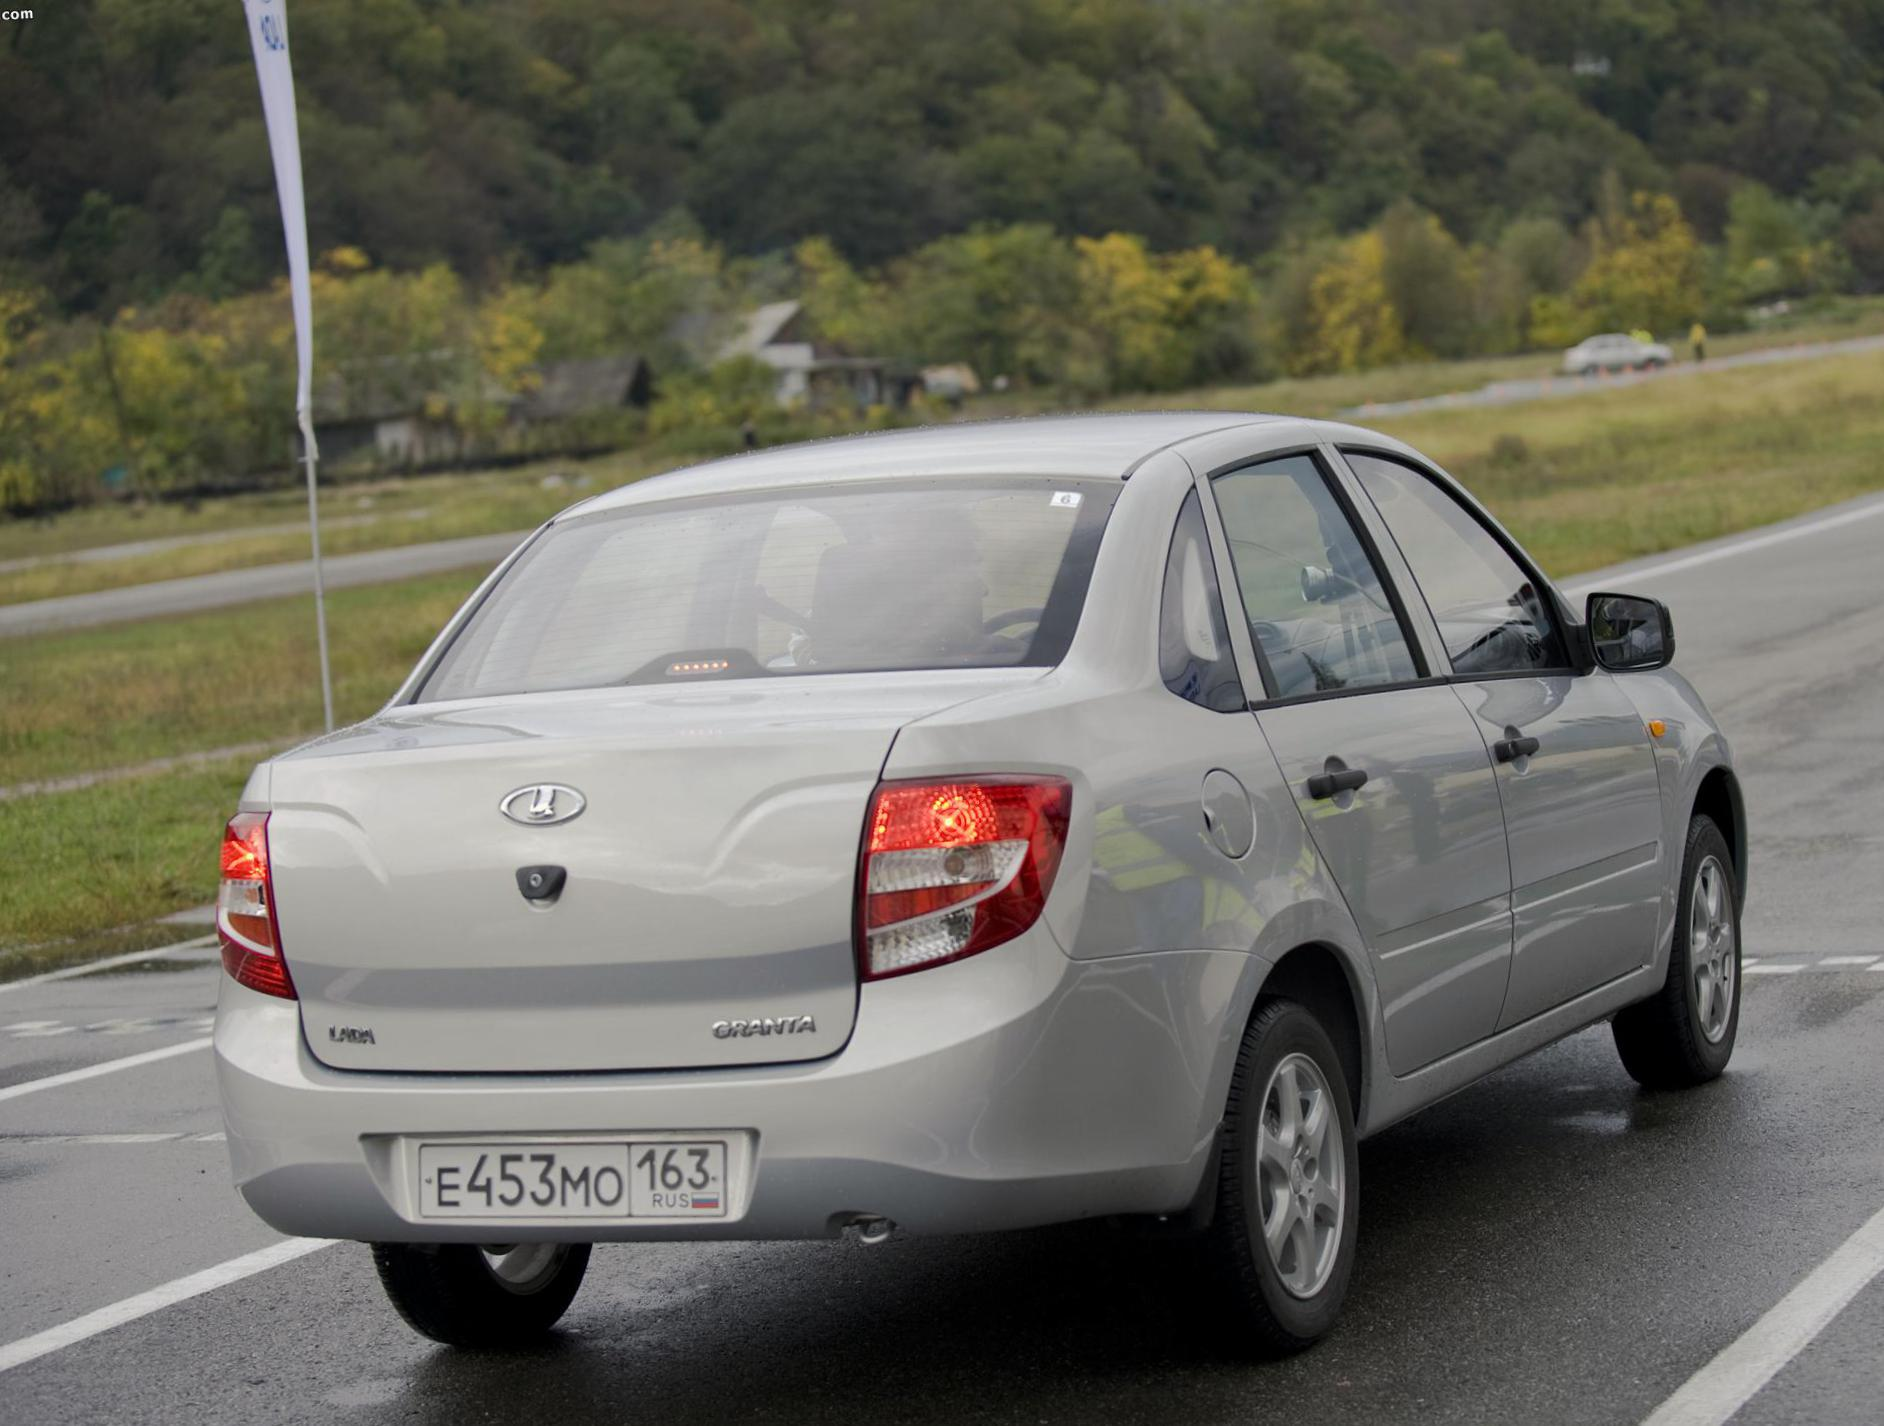 Lada Granta 2190 prices 2015